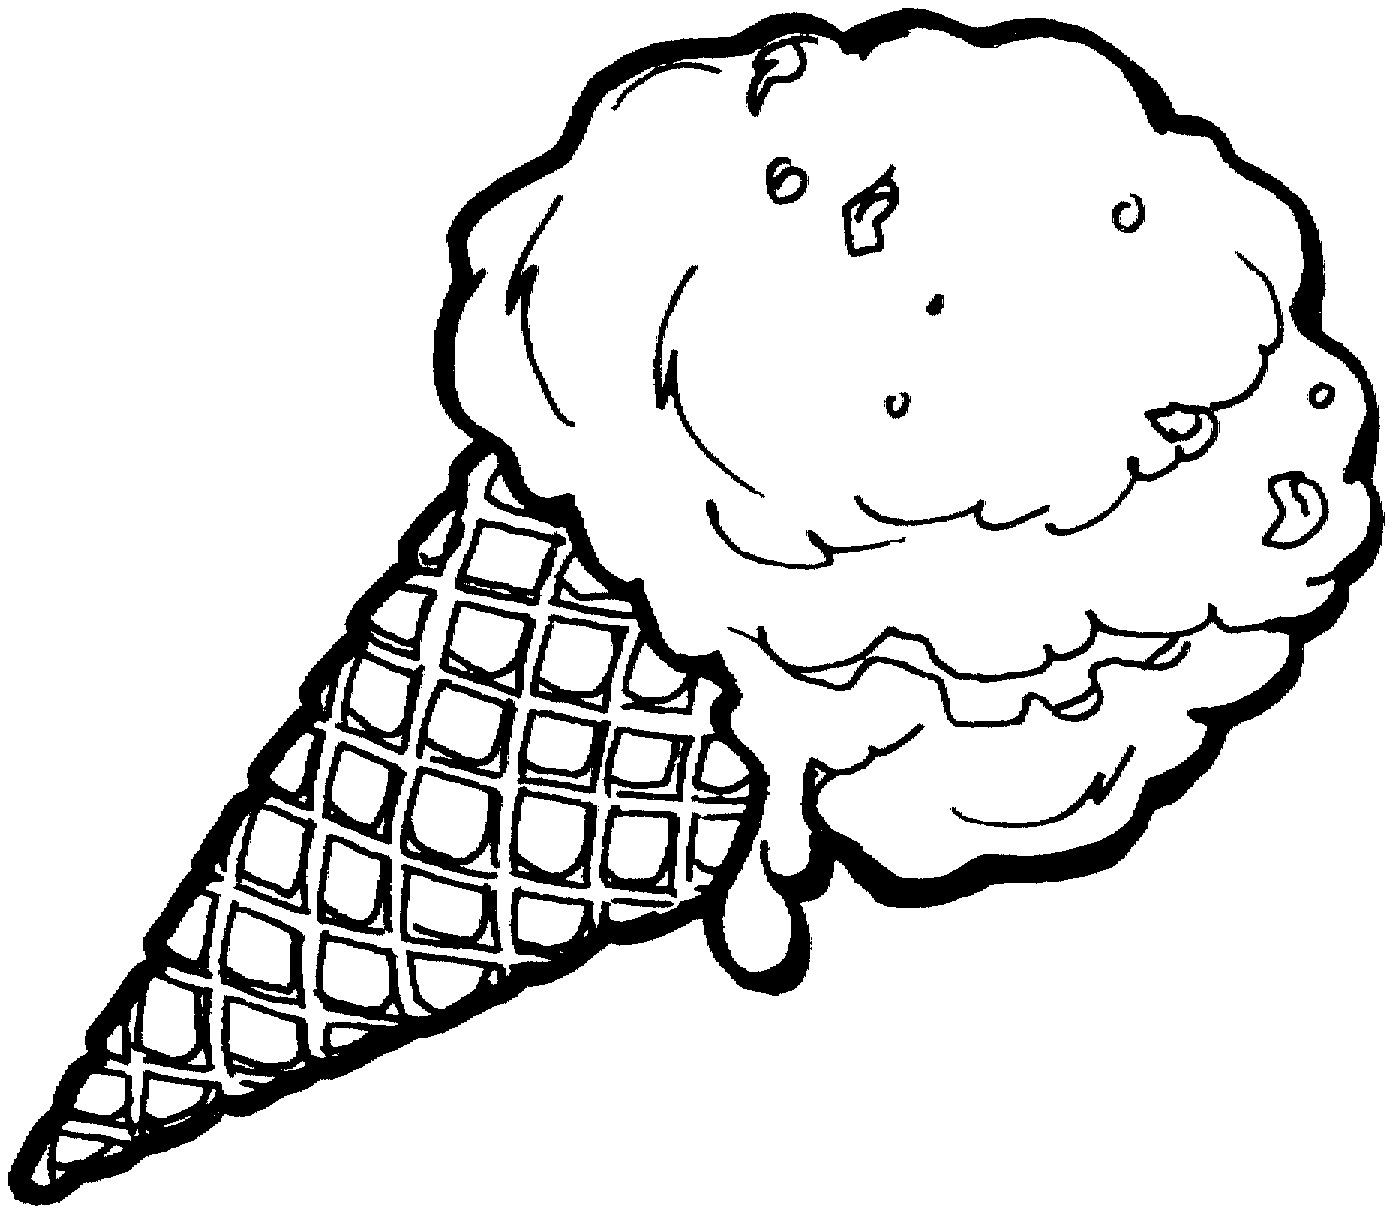 Ice Cream Coloring Pages For Free Download Ice Cream Coloring Pages Toddler Coloring Book Free Coloring Pages